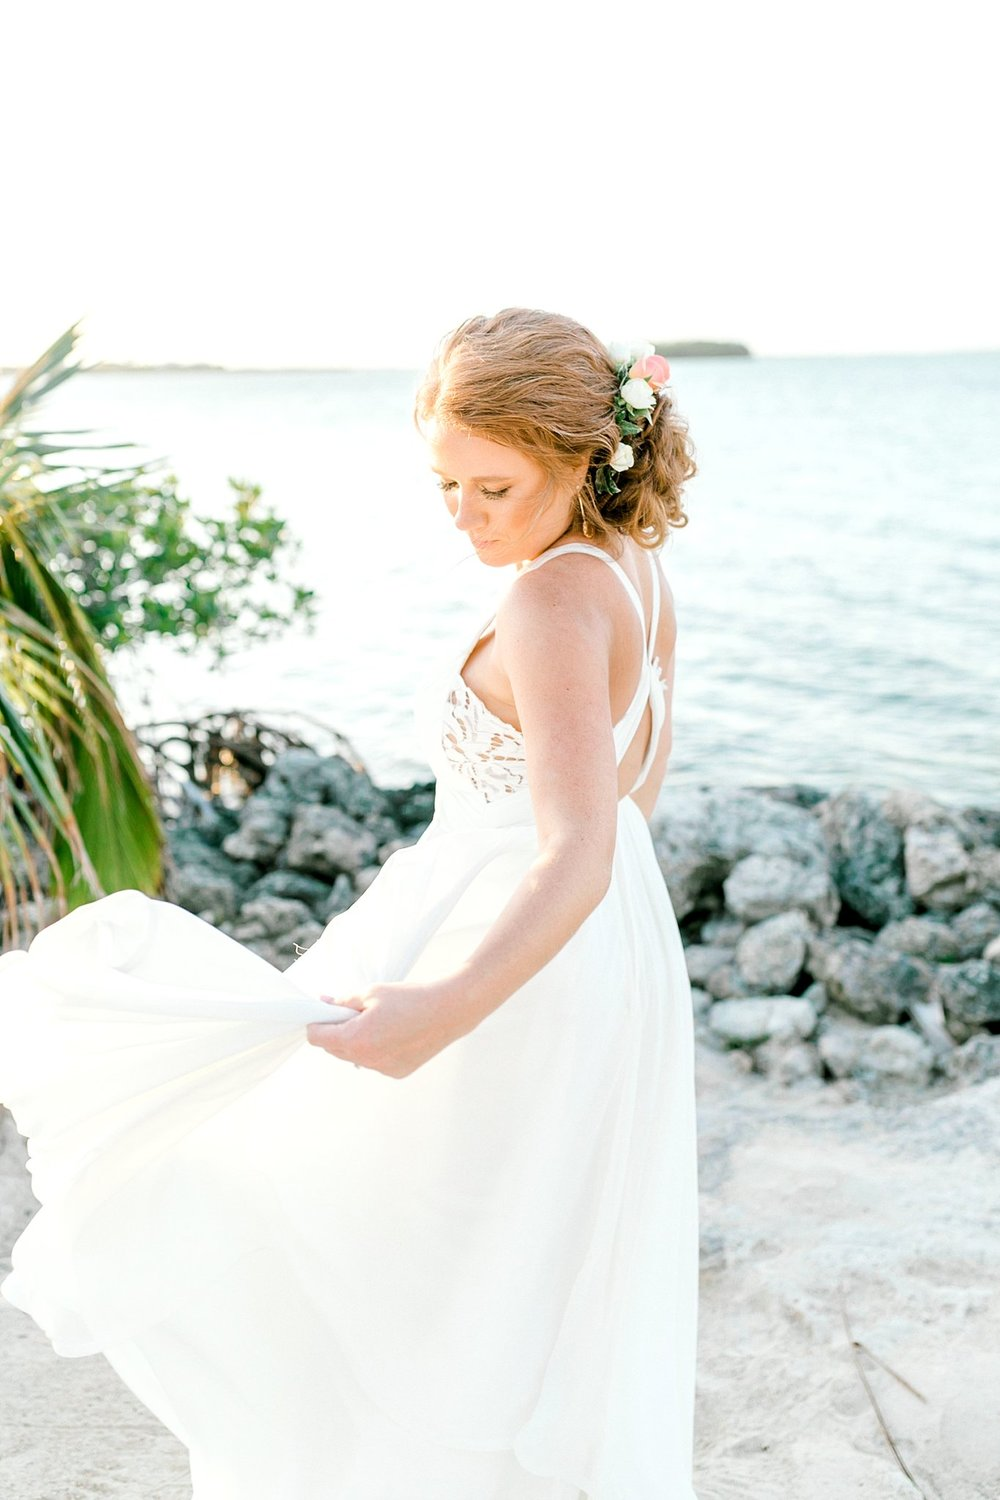 Magdalena Studios Key Largo Destination Wedding Photographer Tropical Island Florida Wedding Miami Vizcaya Gardens Romantic Destination Dreamy Film Wedding Photographer60.jpg